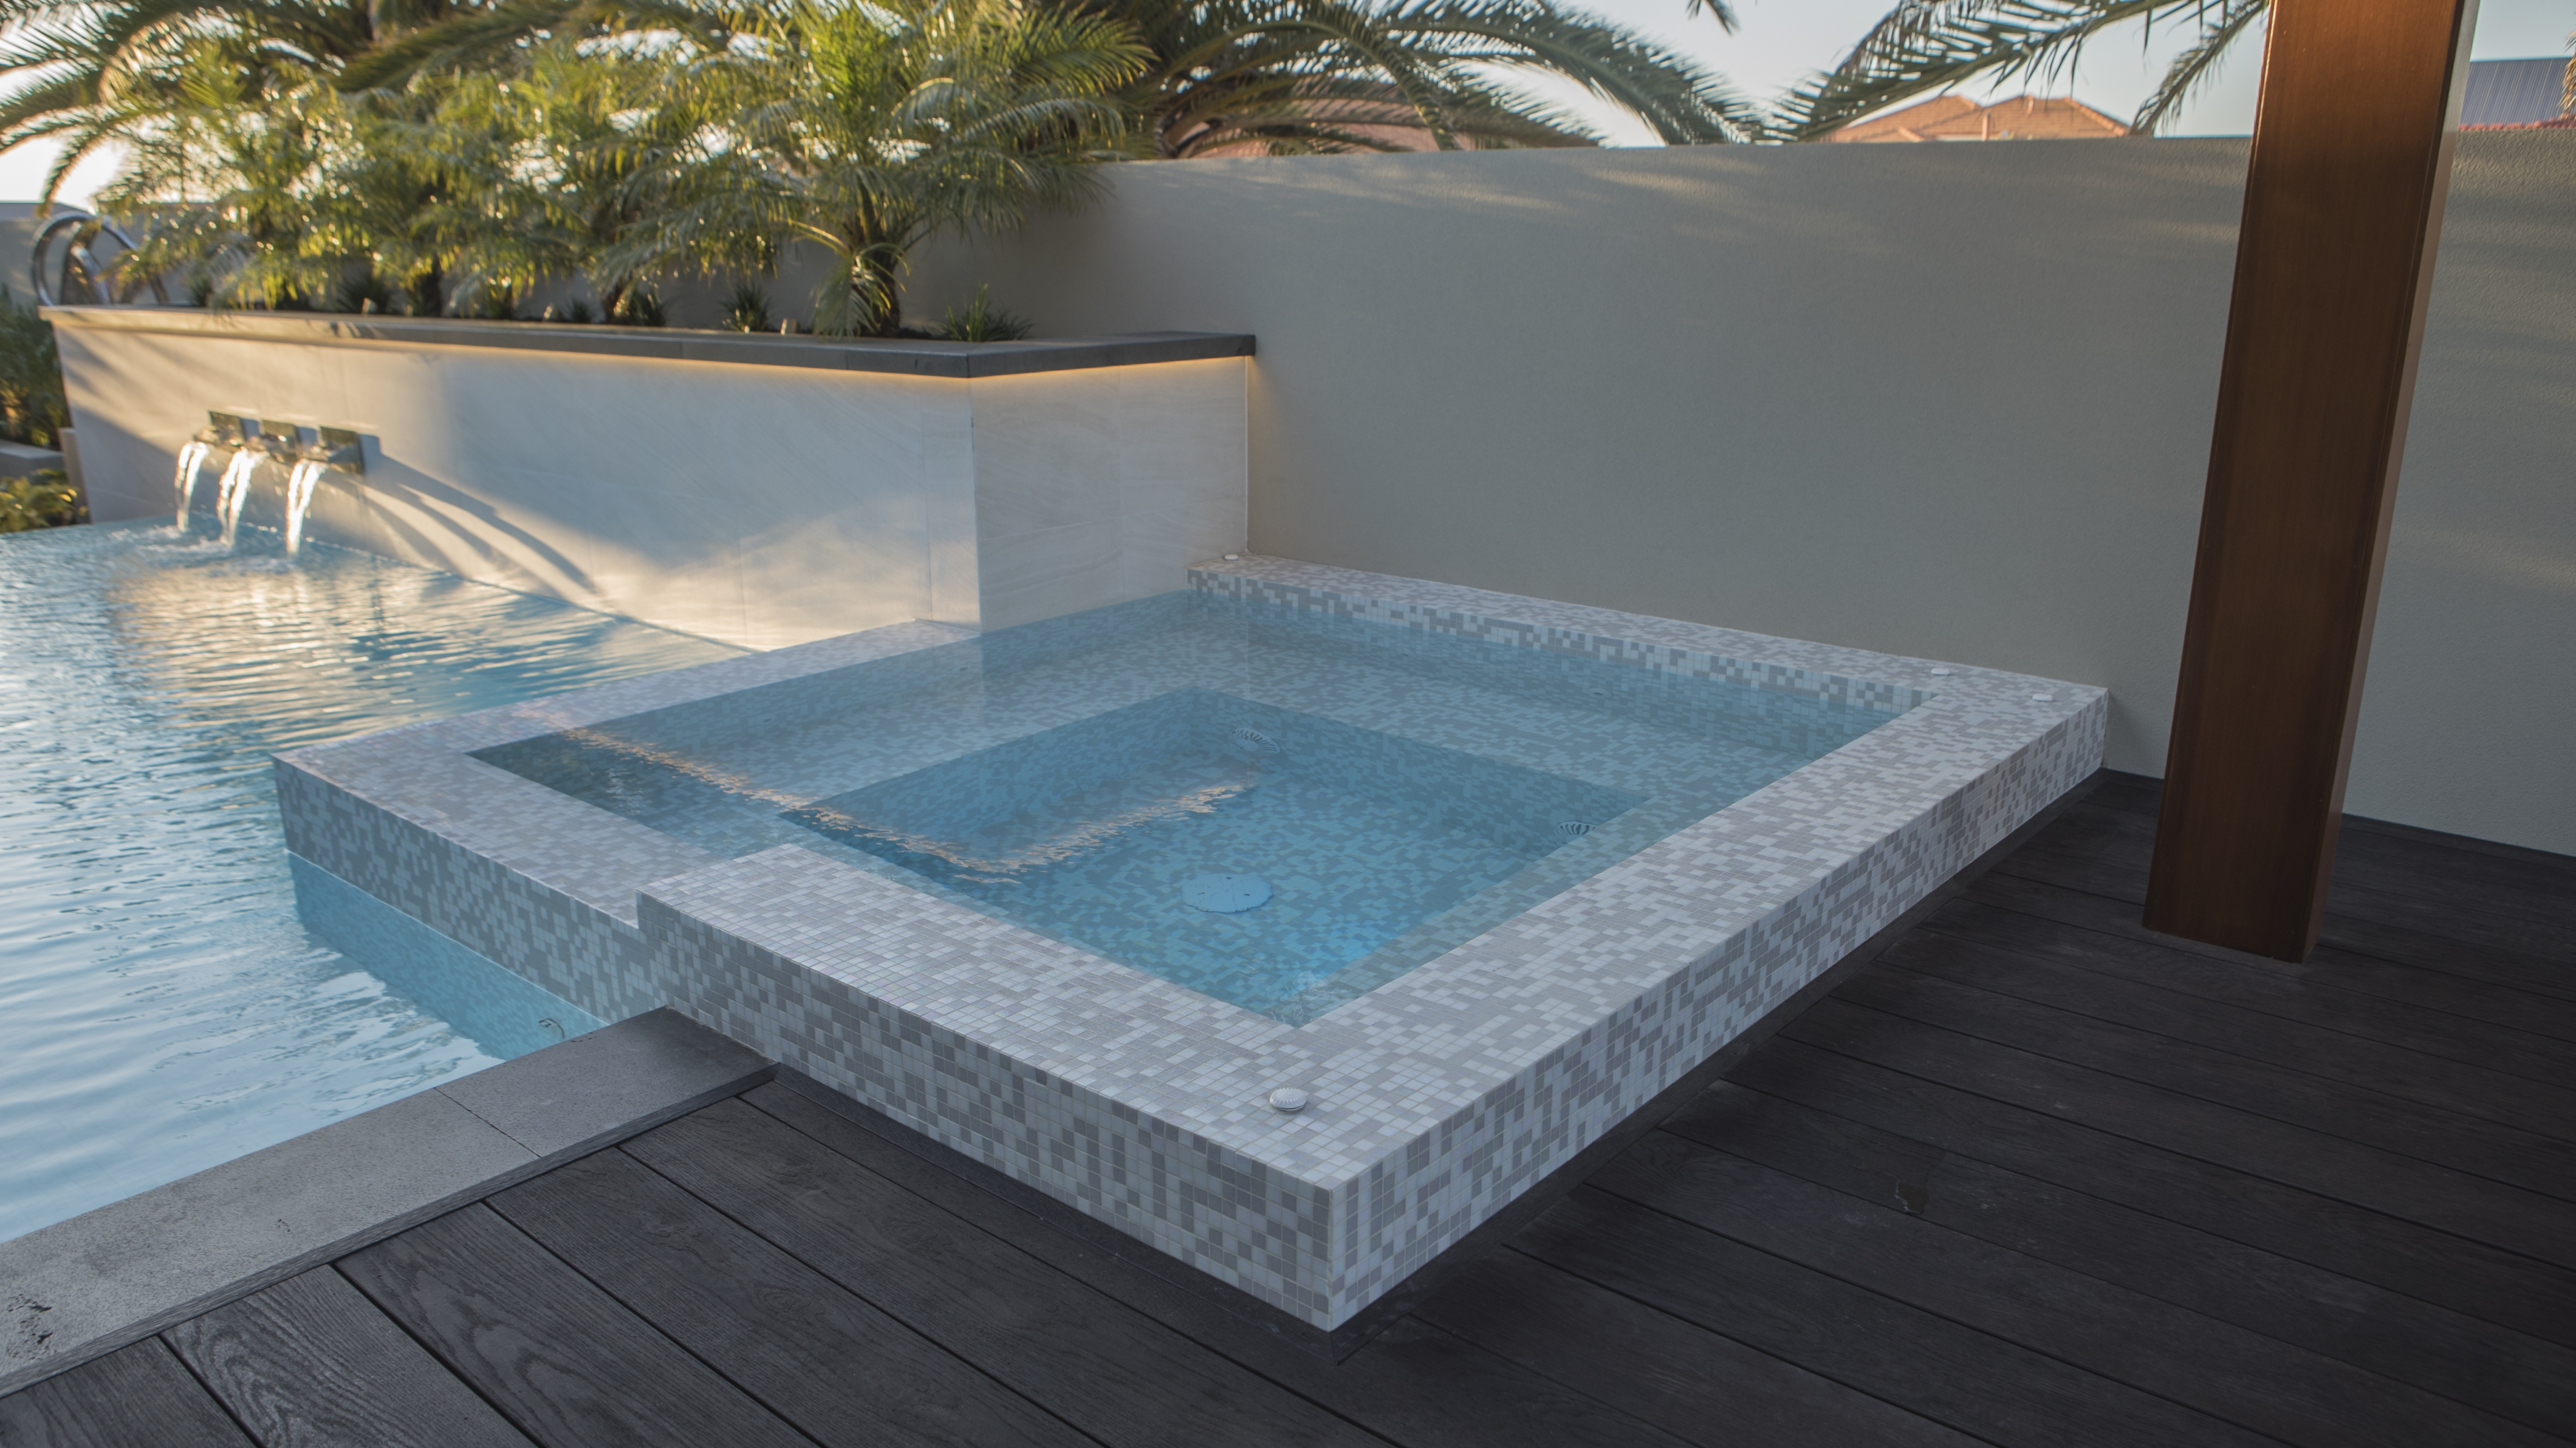 Pools By Design Sept 2016 001-38